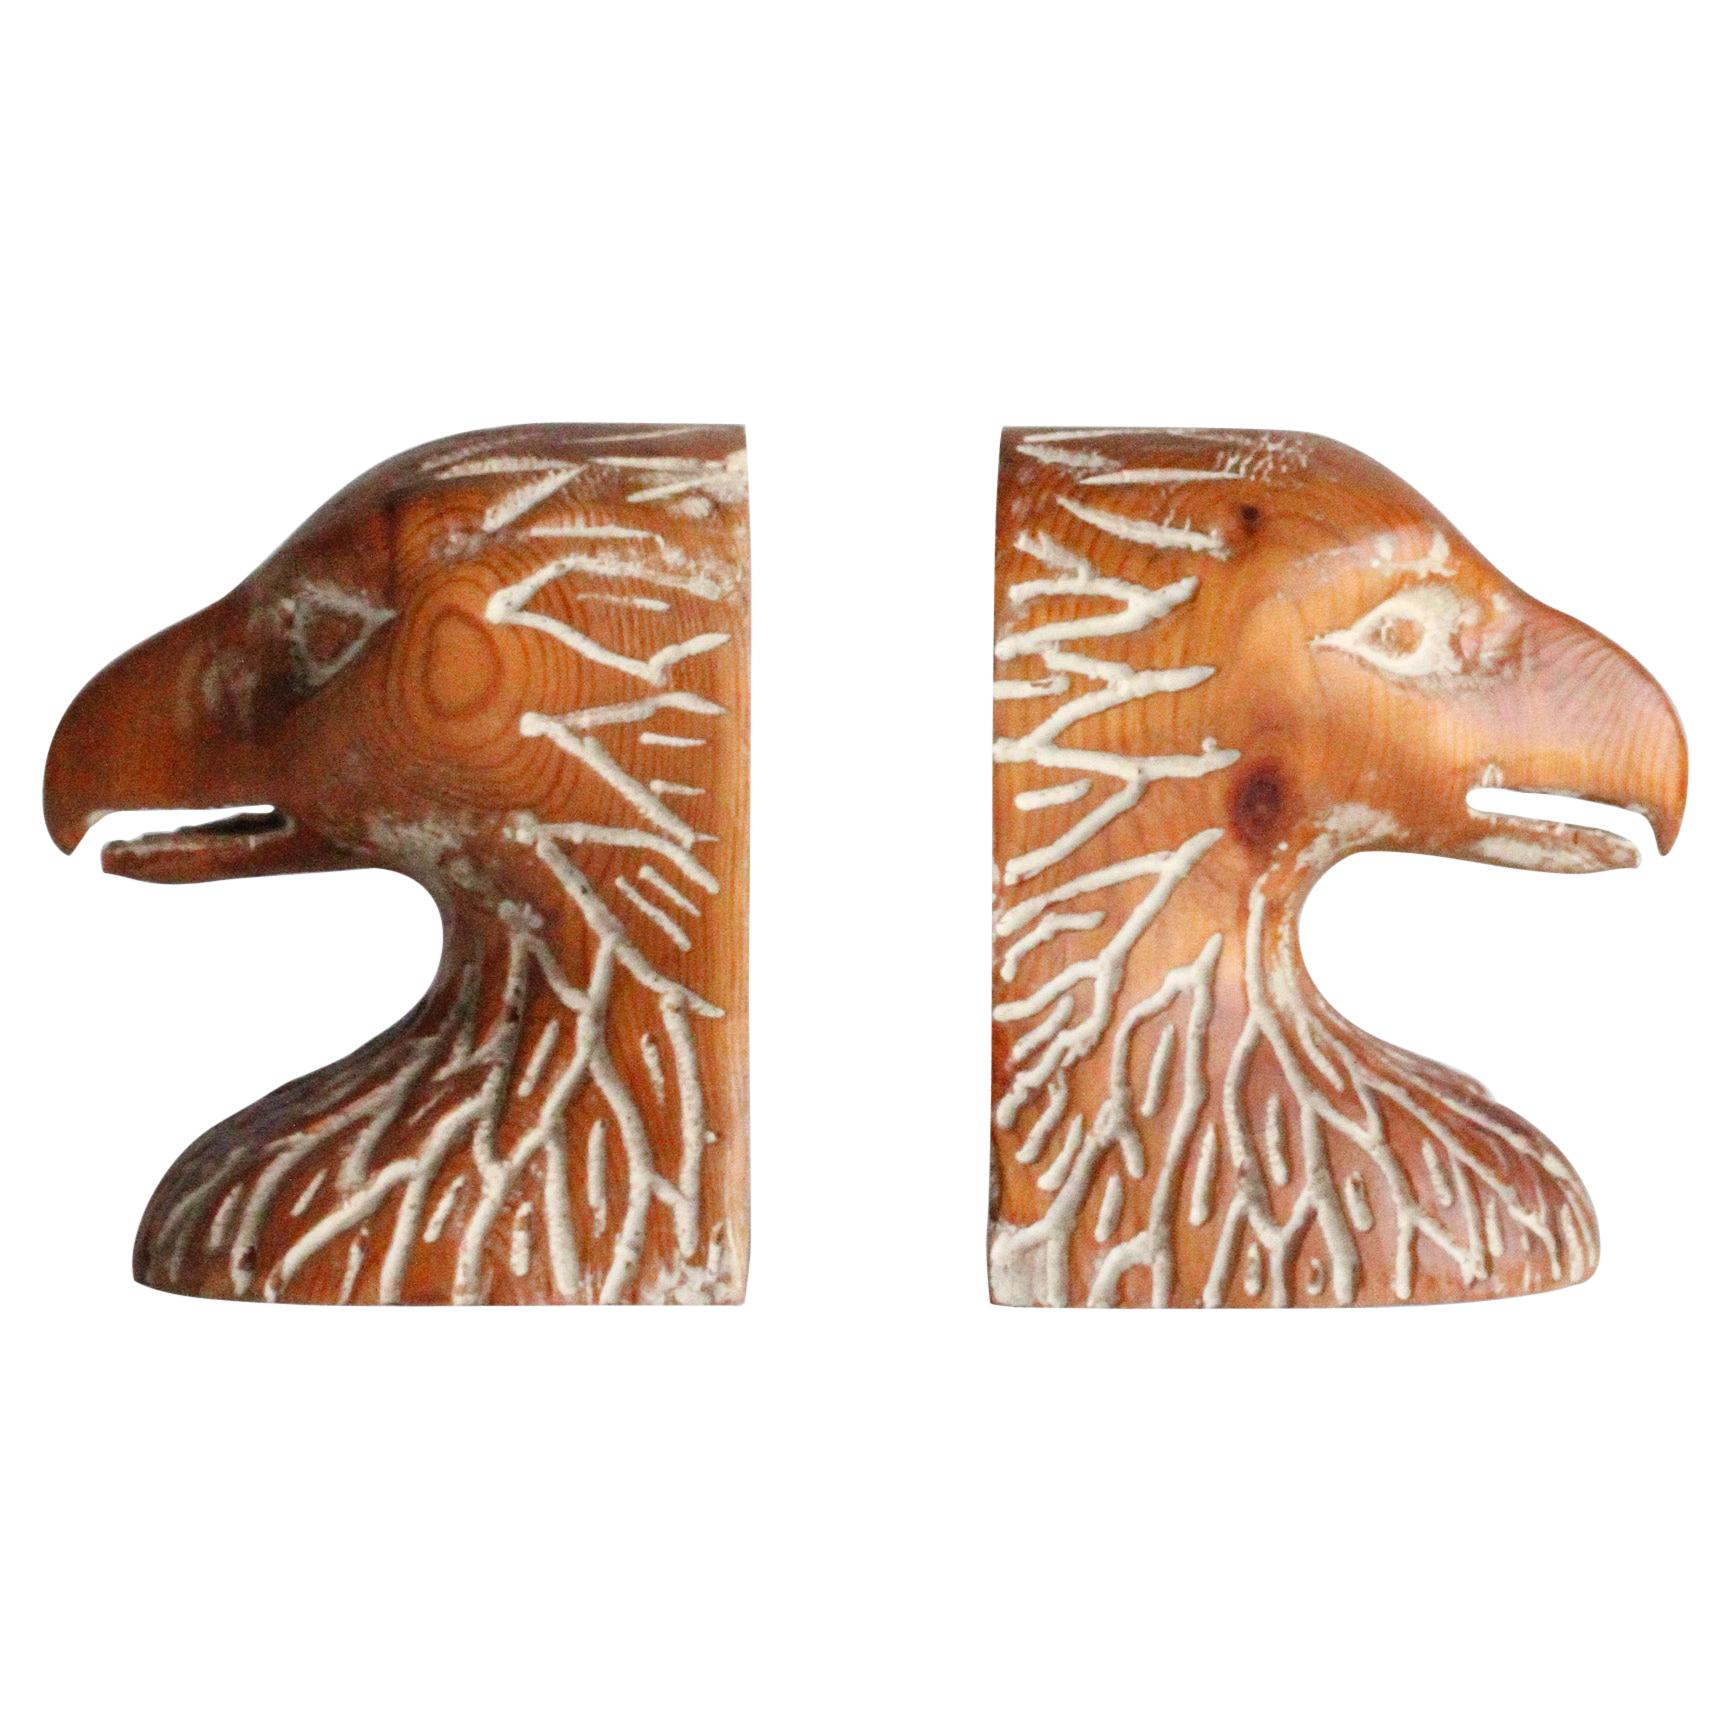 Sarreid Hand Carved Bookends, 1970s, Spain